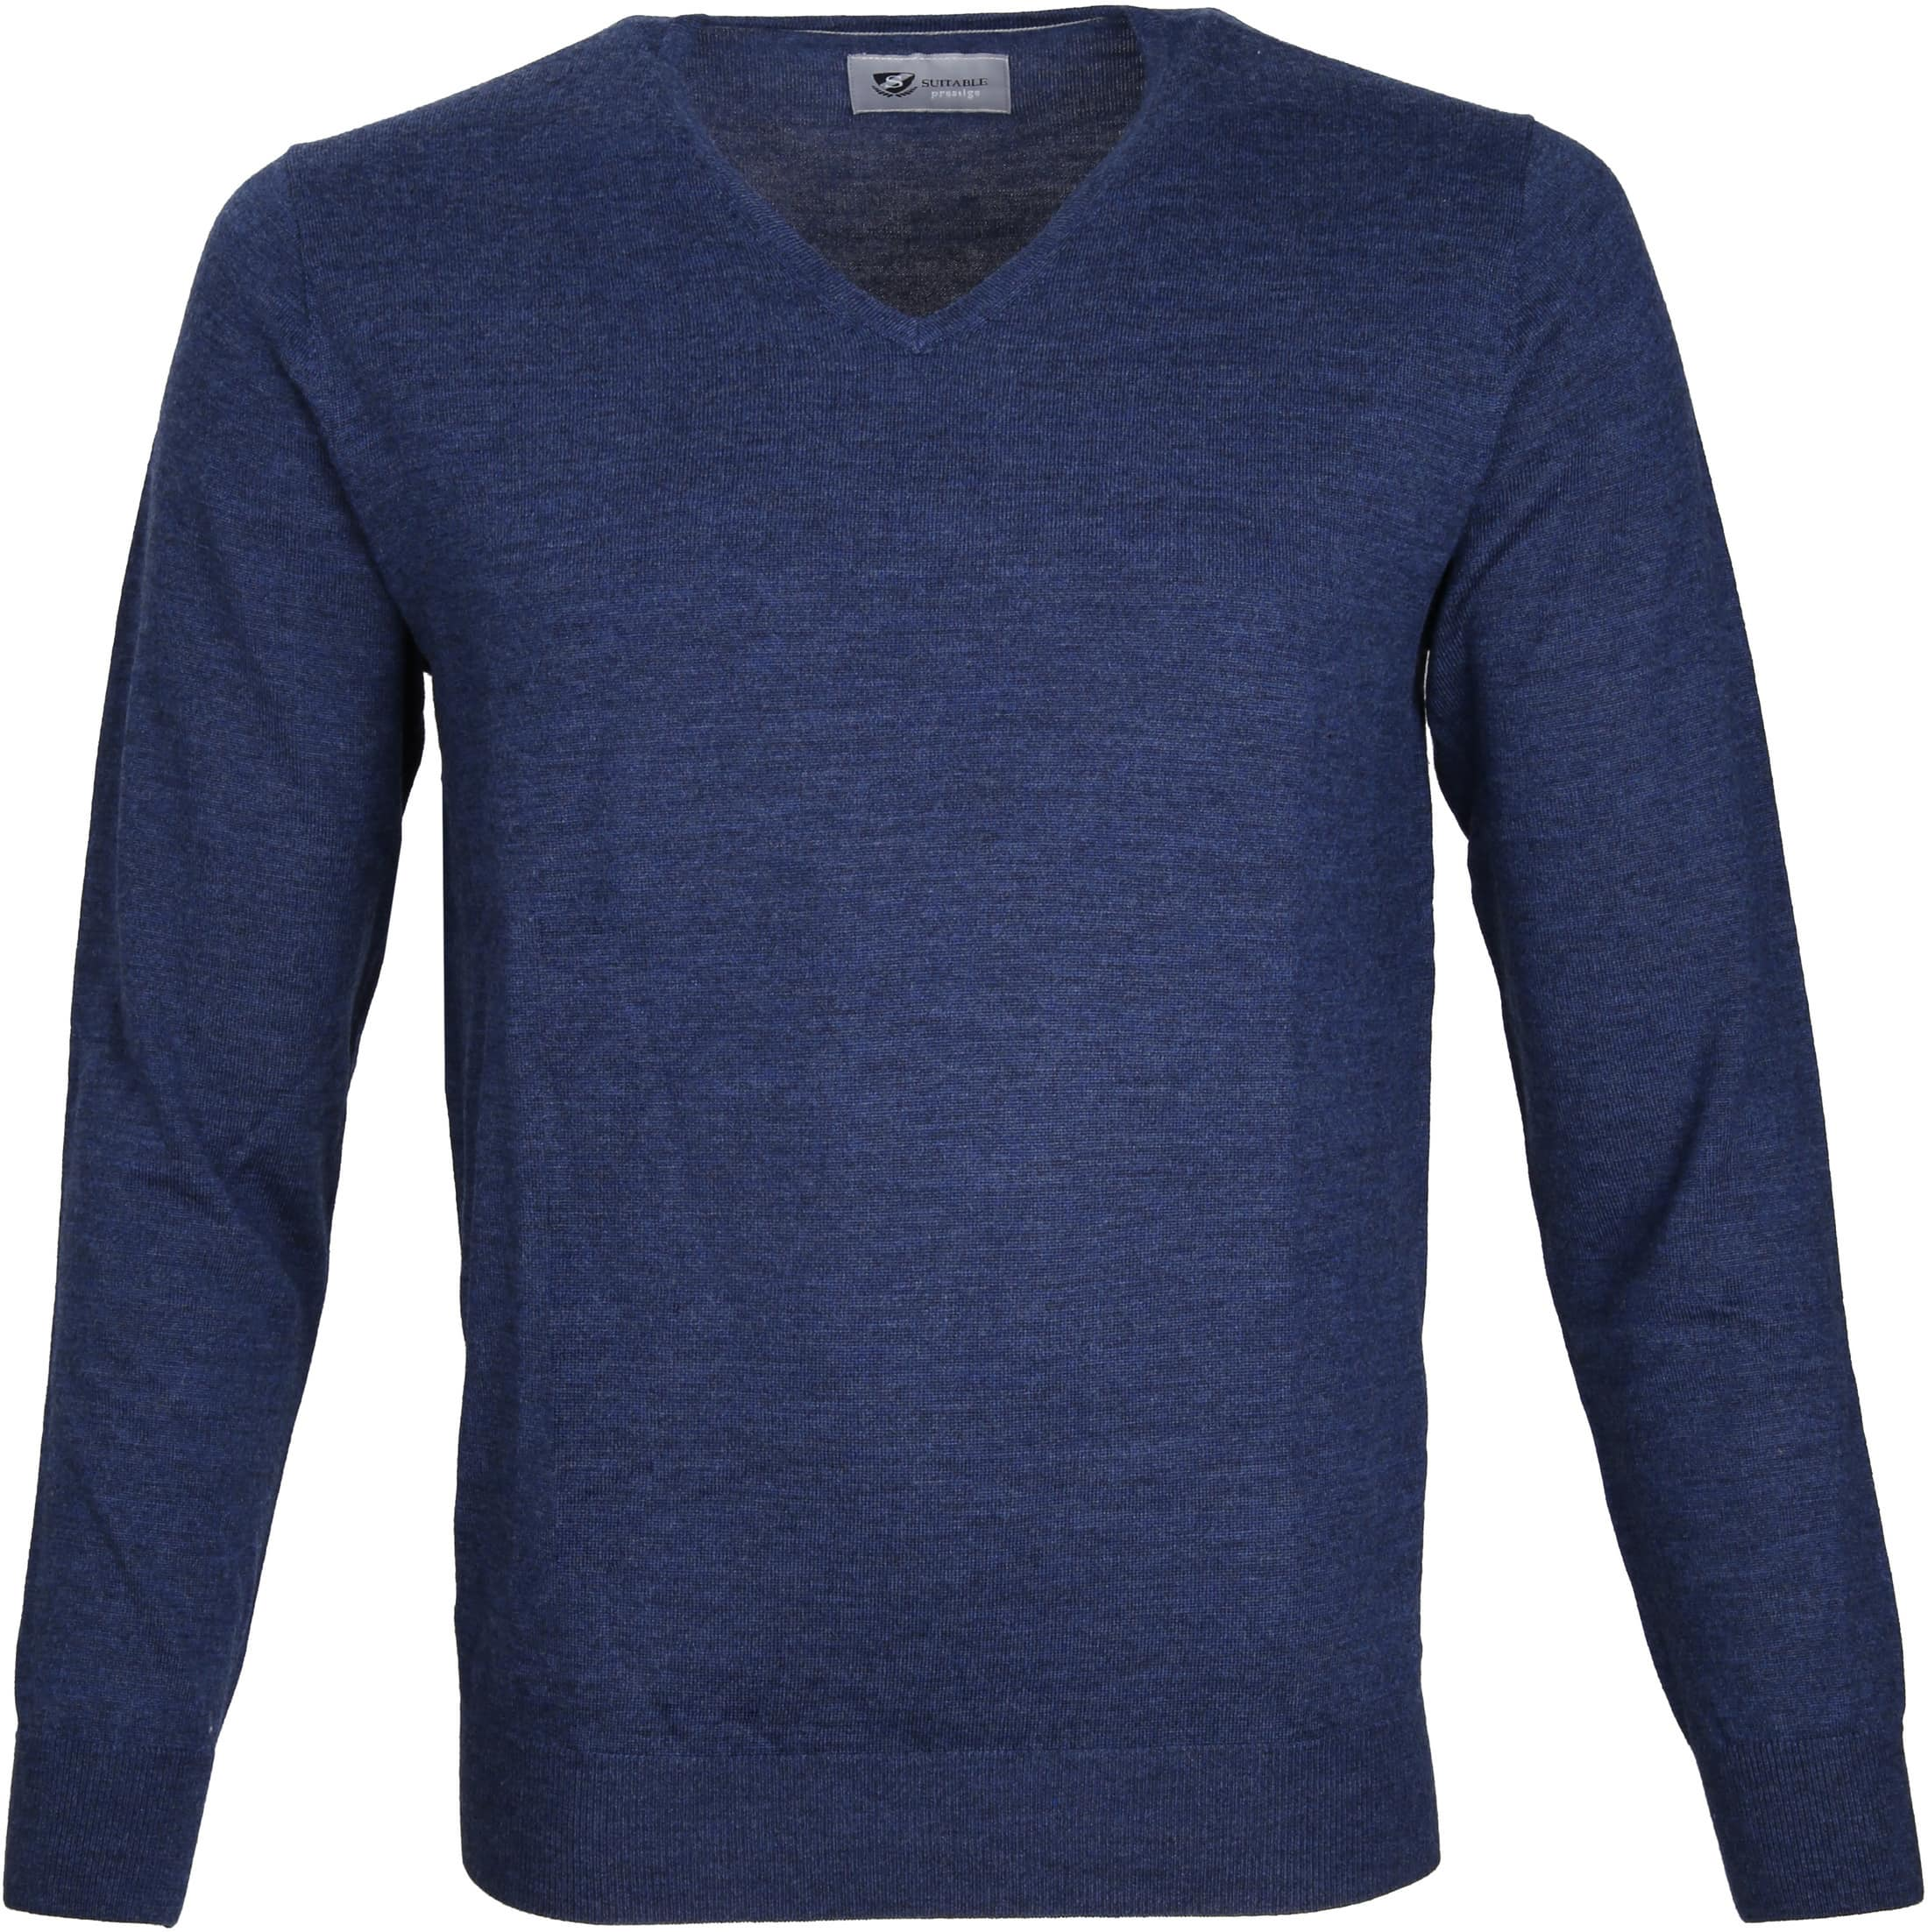 Suitable Prestige Pullover V-Ausschnitt Navy foto 0